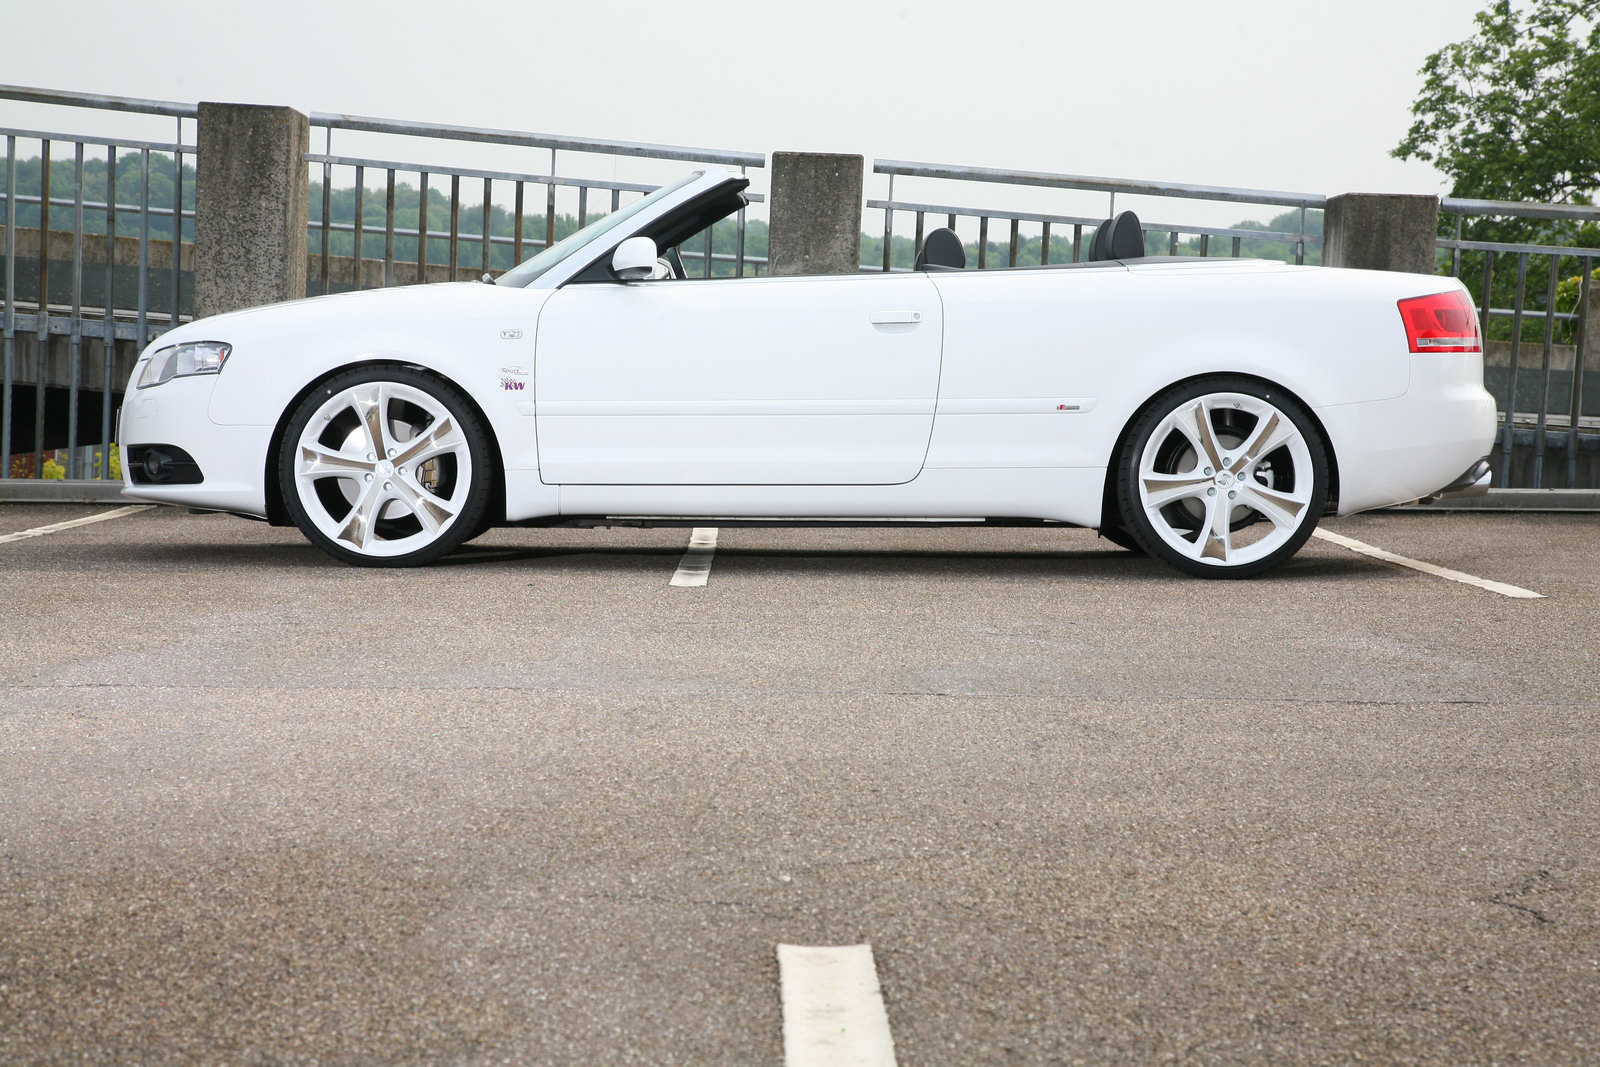 Audi A4 Cabriolet 6 Audi A4 2.0 TFSI Convertible Tuned by SportWheels